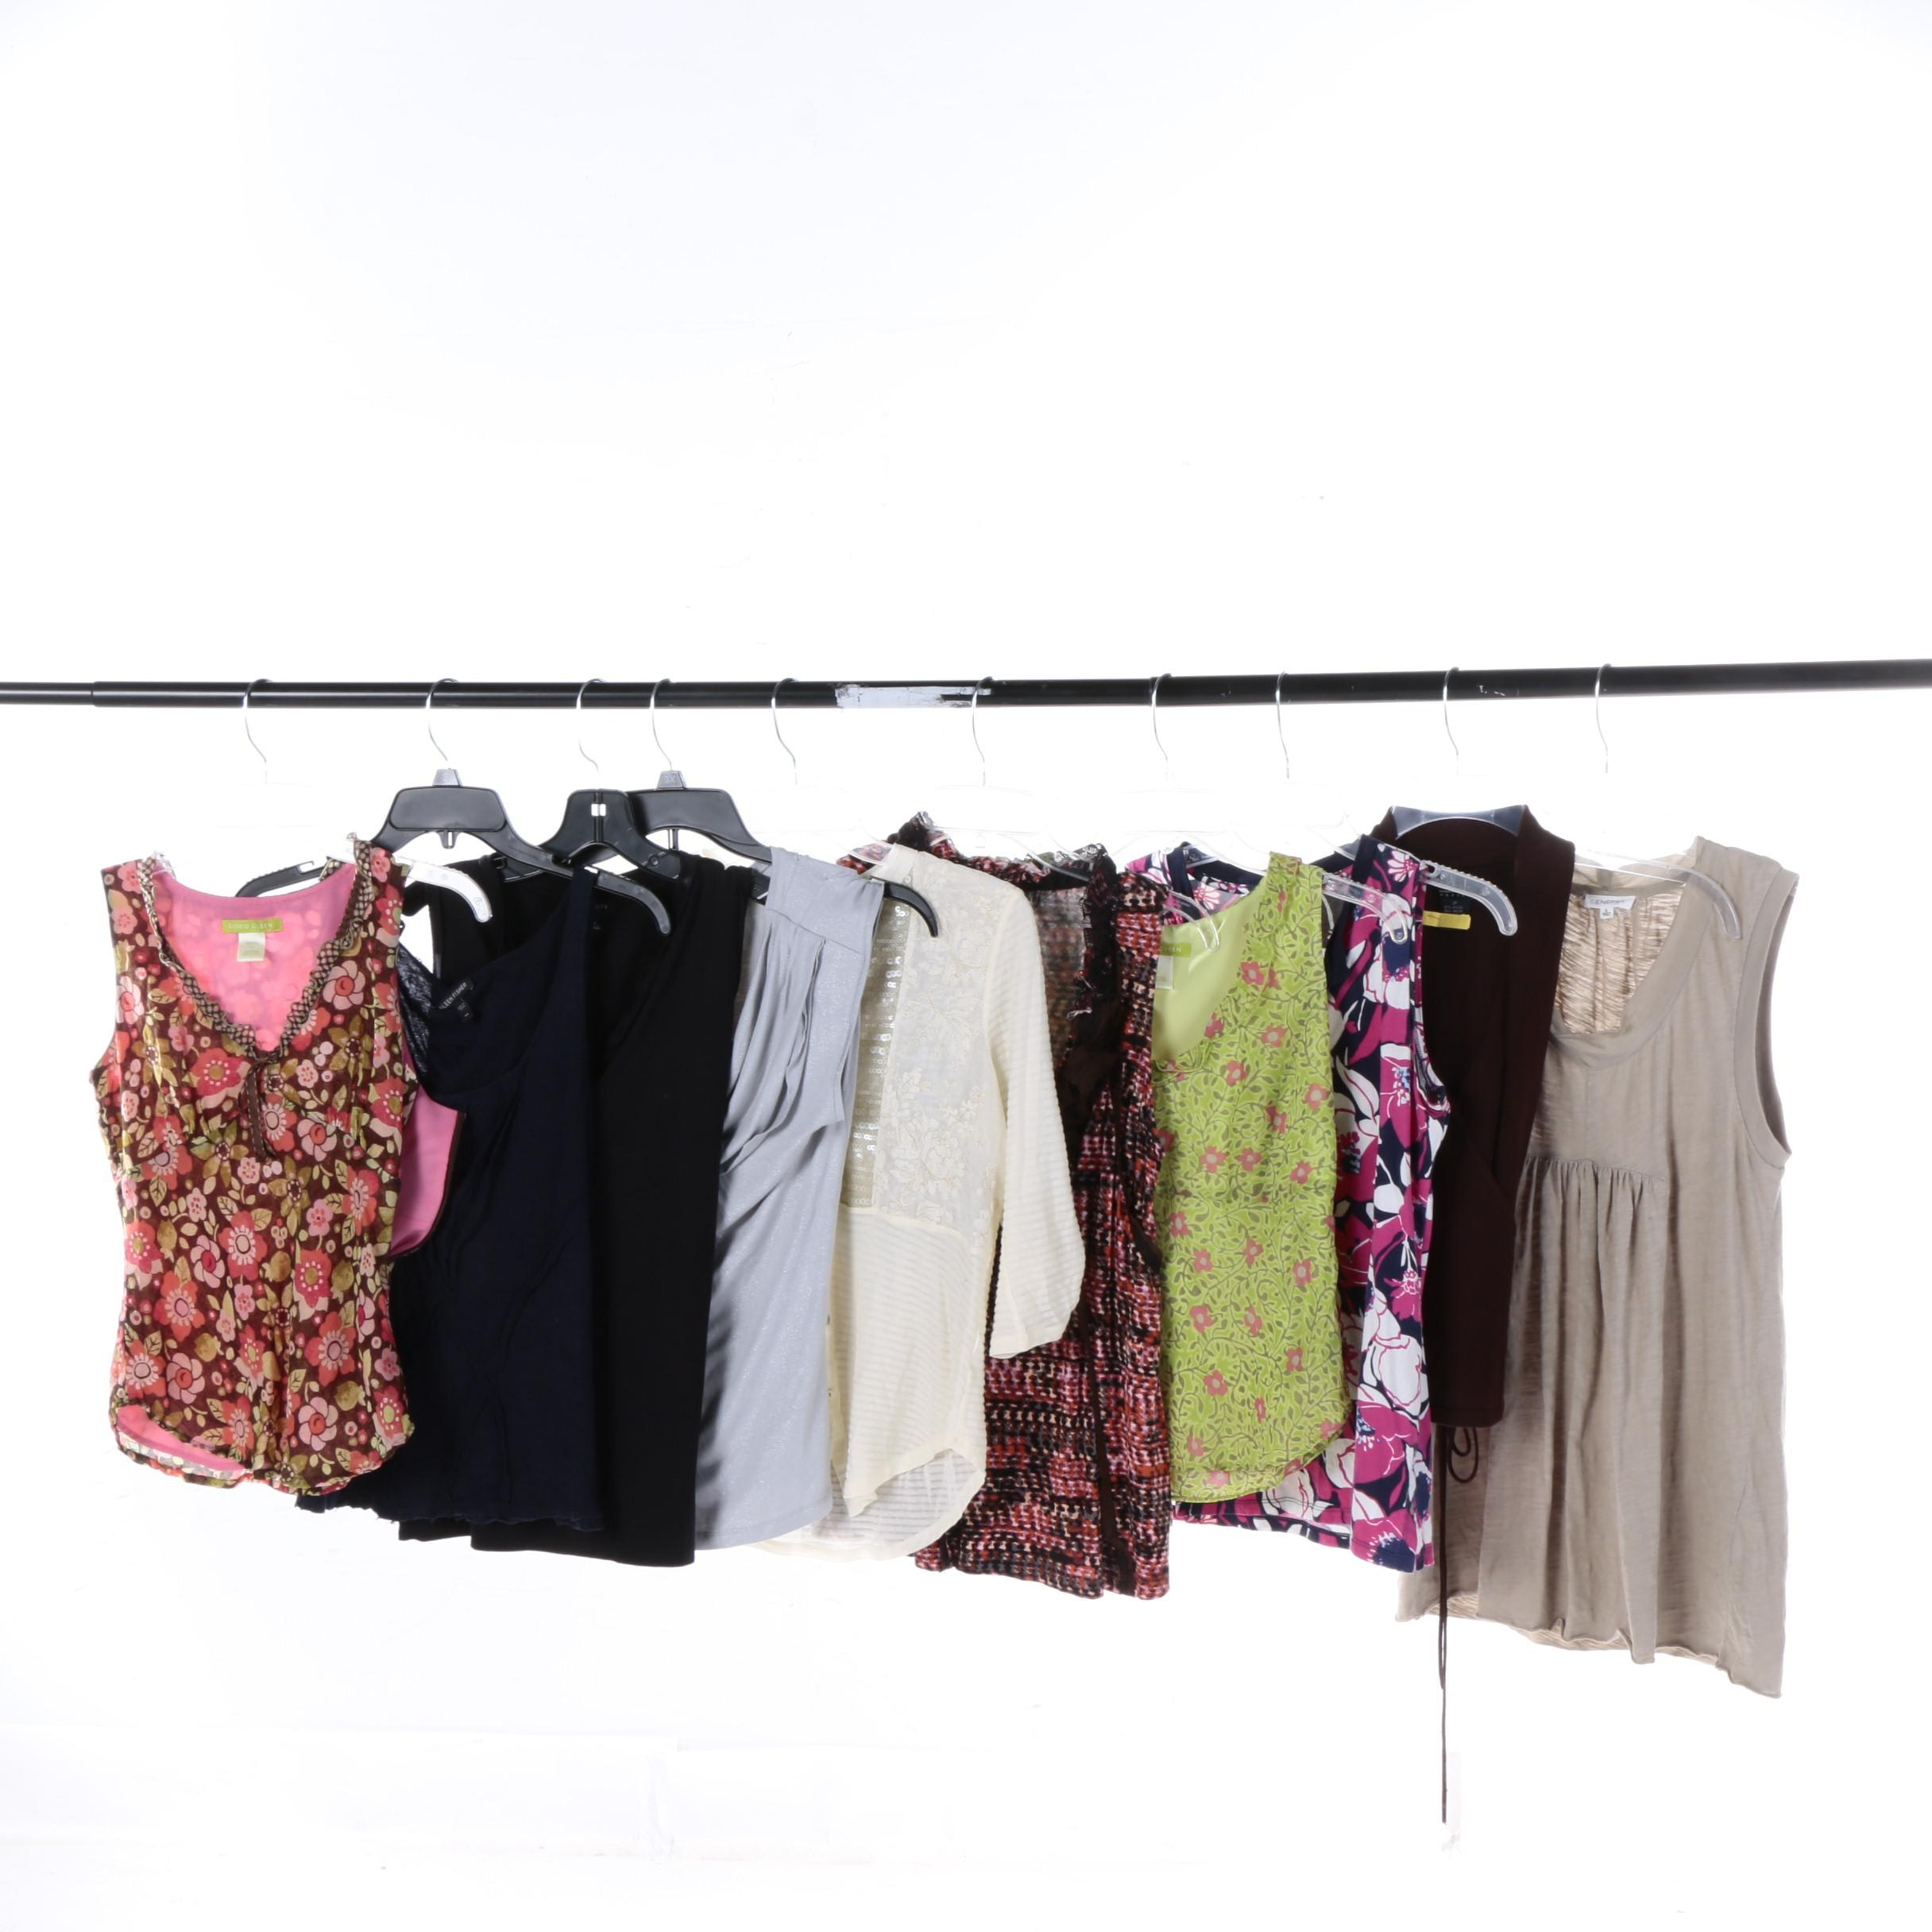 Women's Blouses and Tops Including Sigrid Olsen, Eileen Fisher